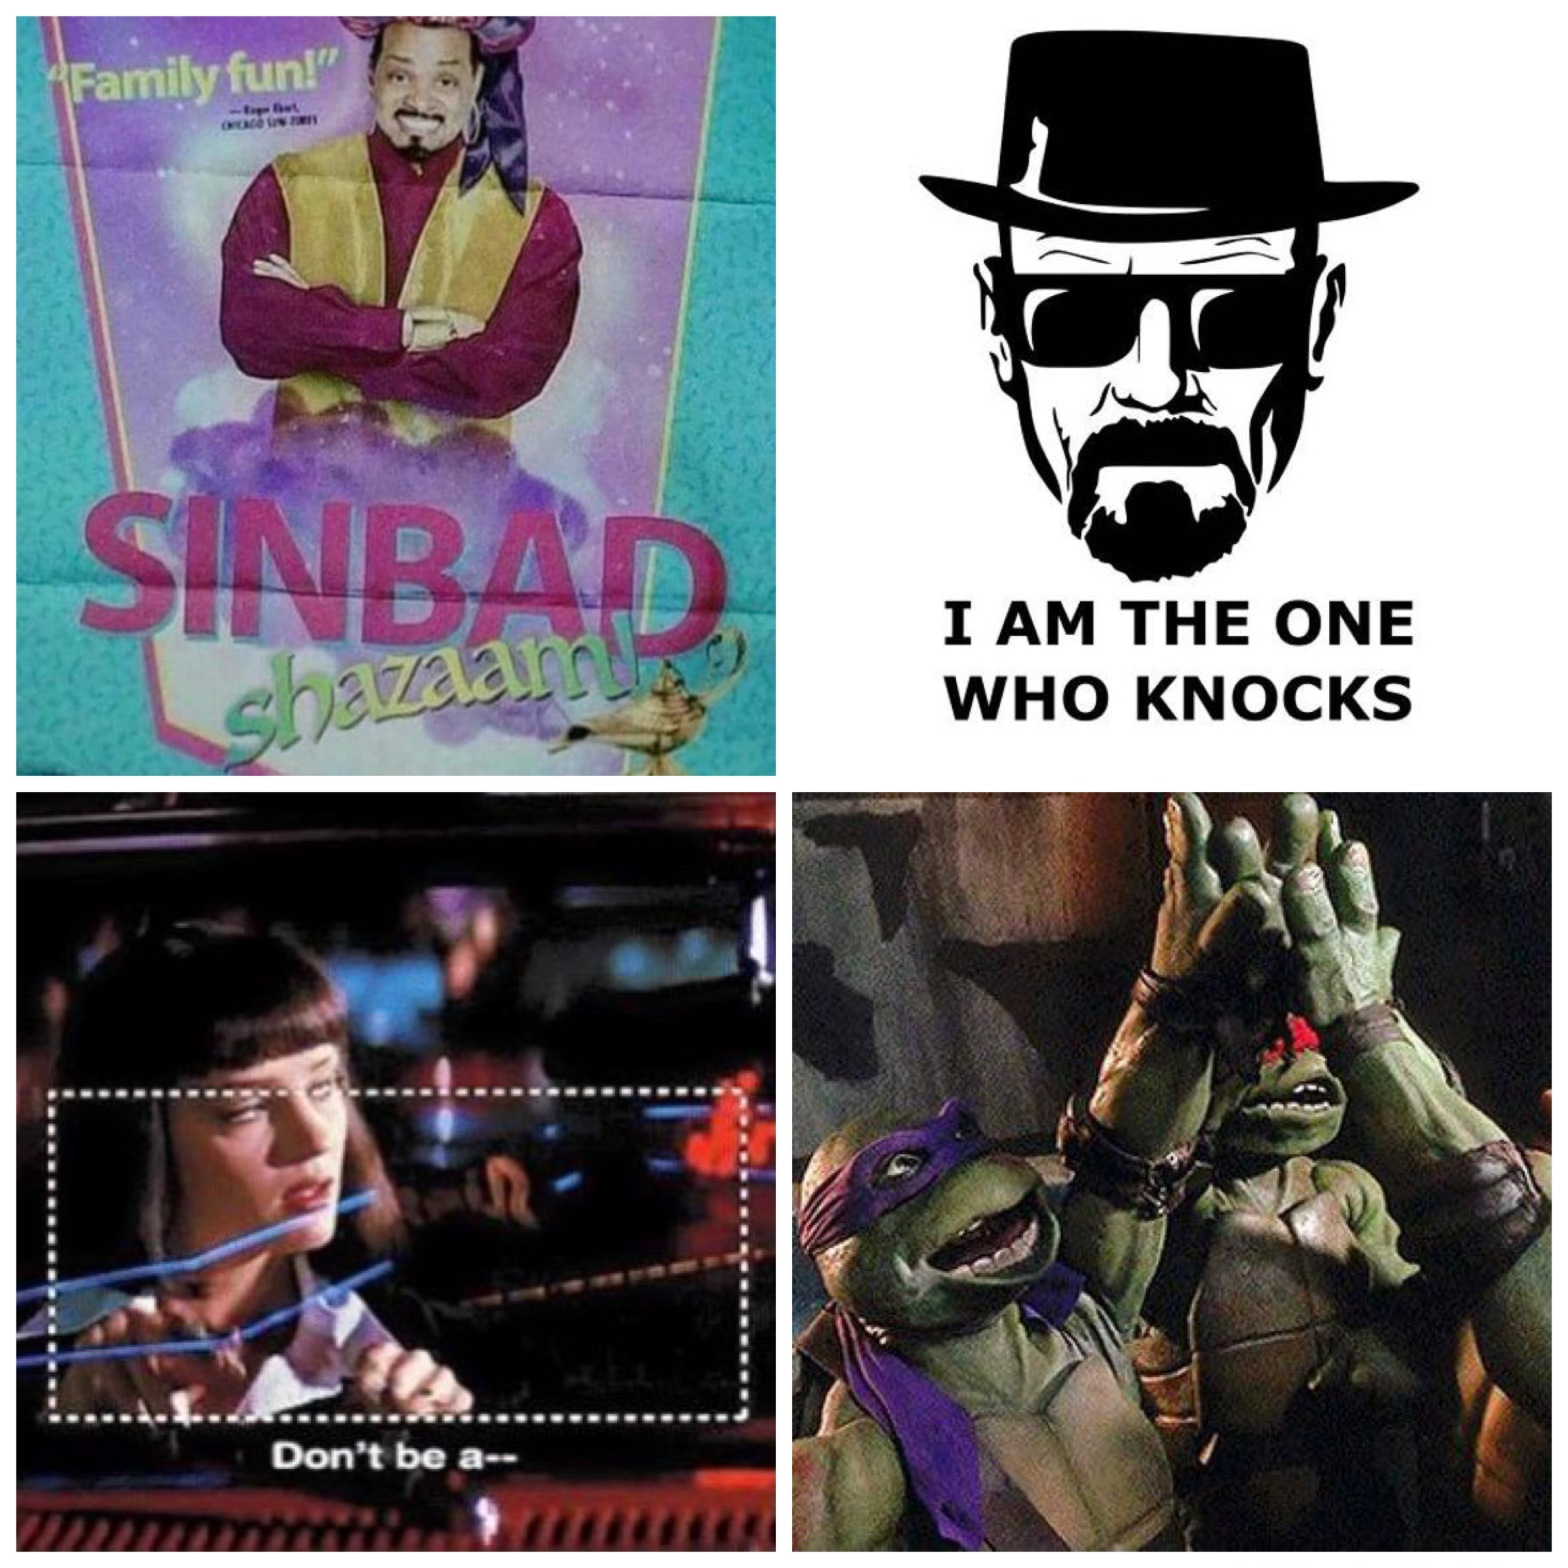 Sinbad from the fake Shazaam movie, Walter White's catch phrase, don't be a rectangle from Pulp Fiction, and a TMNT freeze frame high five.